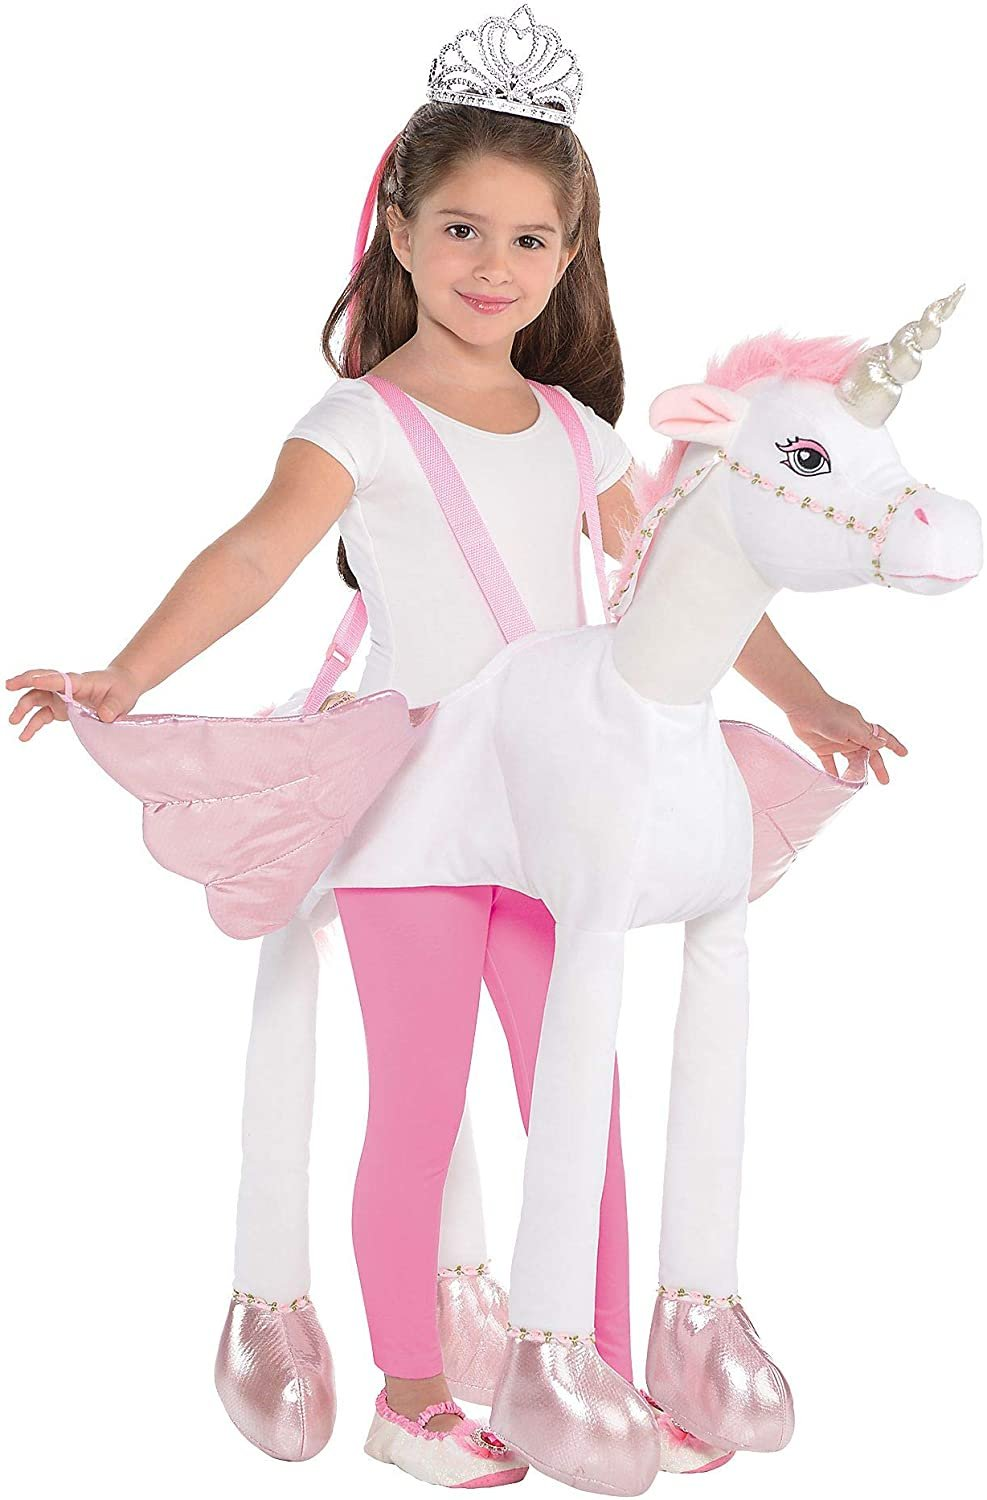 Suit Yourself Unicorn Ride-On Costume for Children, Size Medium, Includes a Detailed Rider Suit and 4 Attached Legs